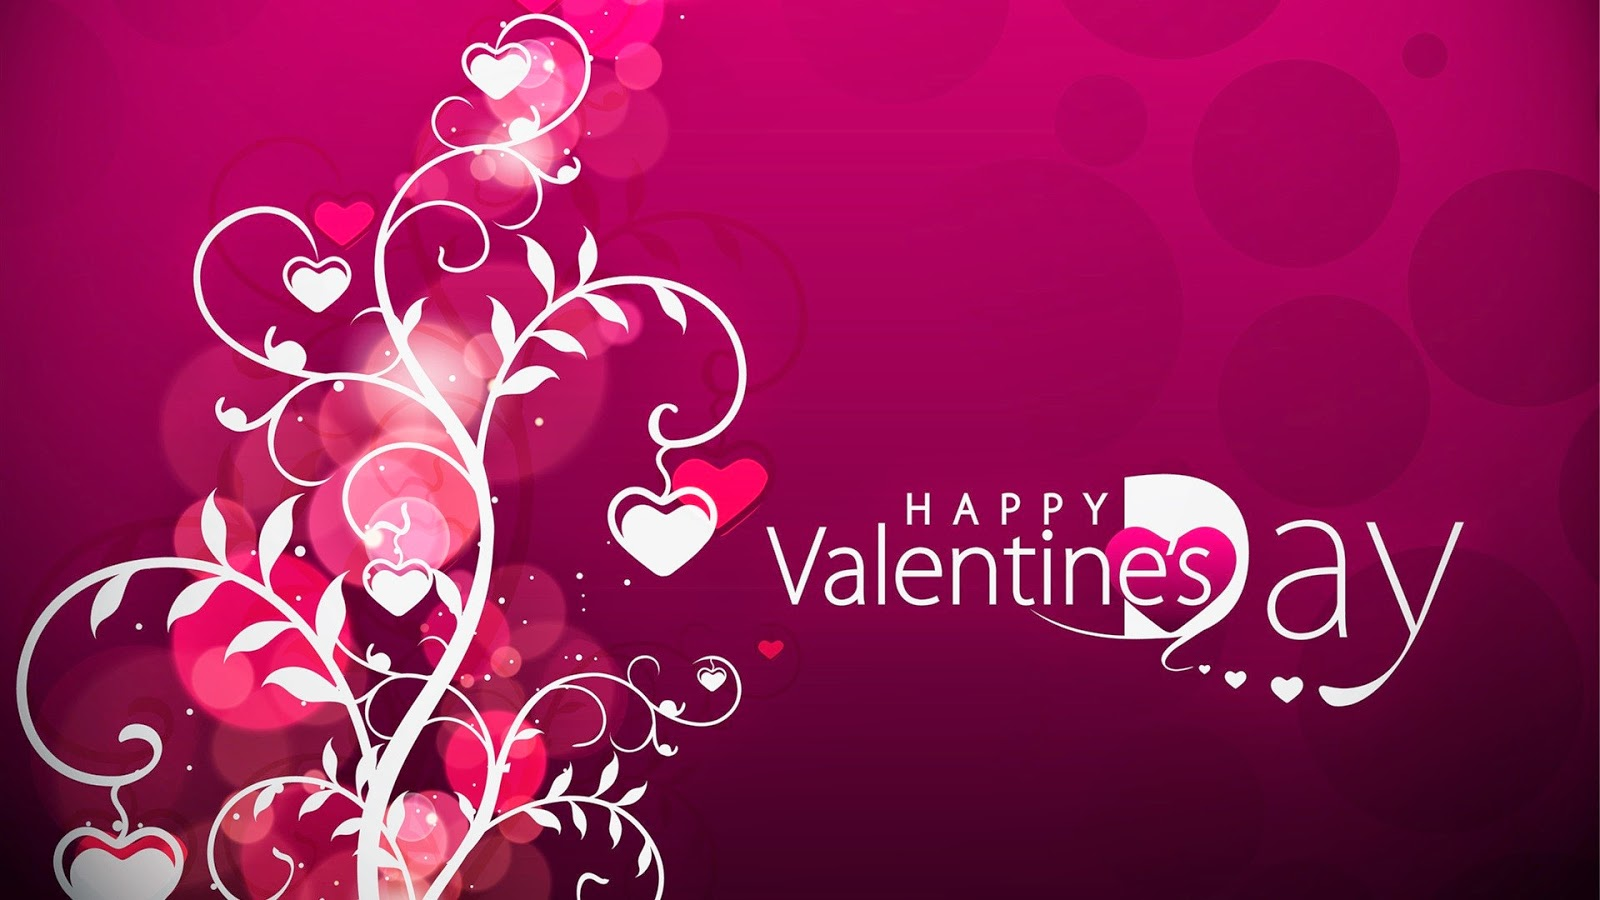 Happy Valentines day 2016 hd wallpapers